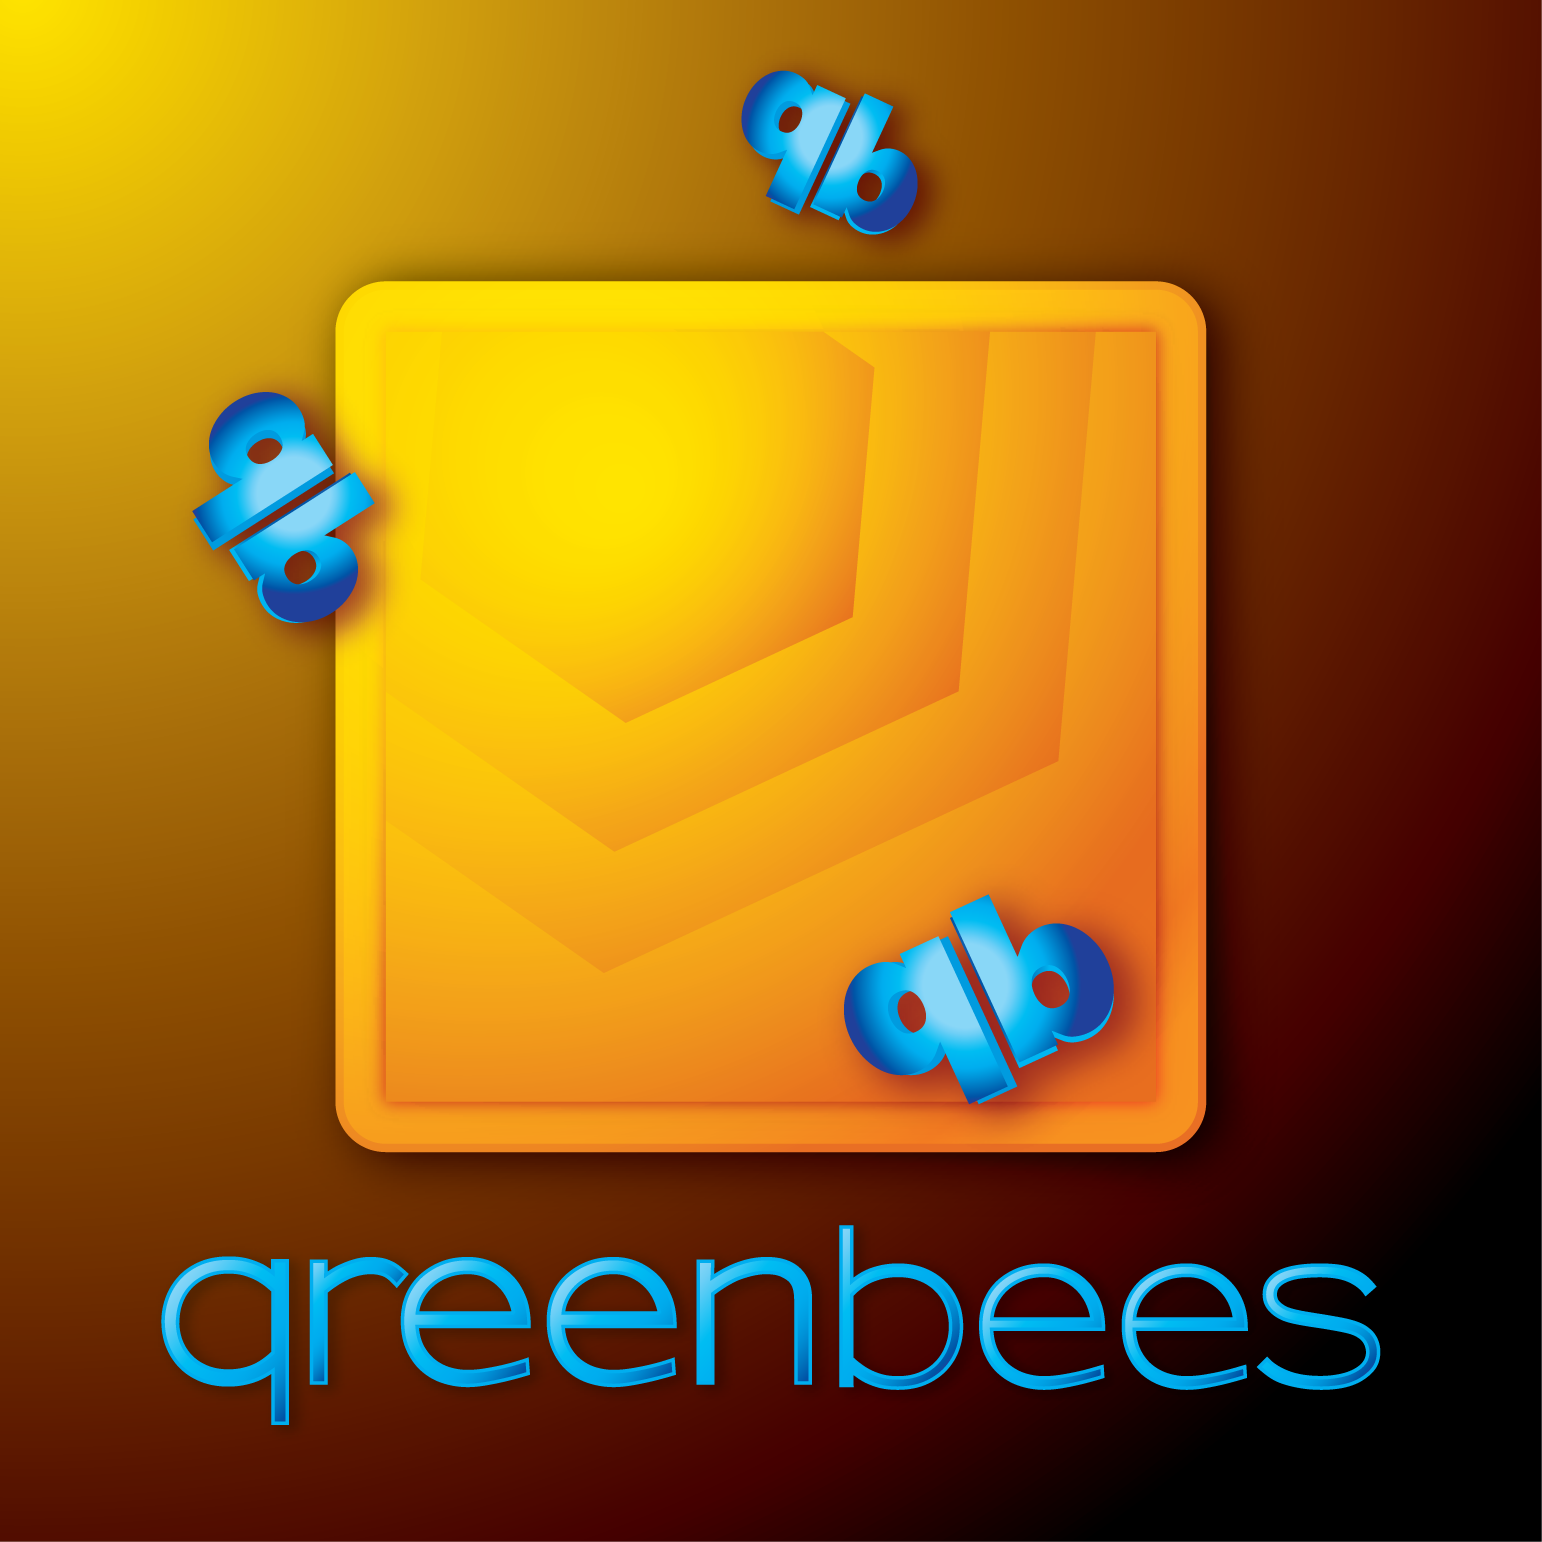 Logo Design by Teresa Abney - Entry No. 257 in the Logo Design Contest Greenbees Logo Design.